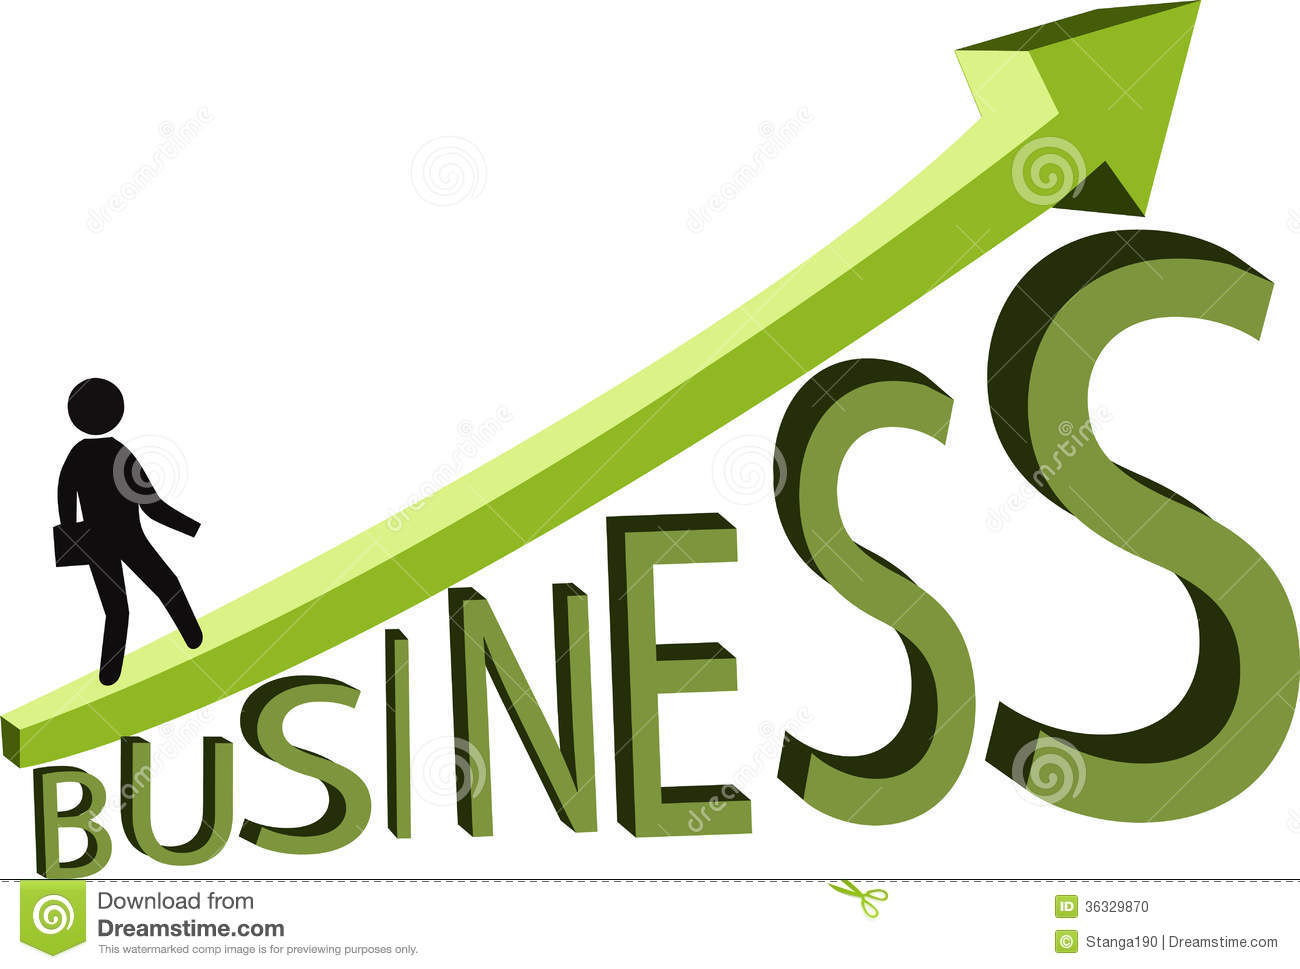 clipart for business logos - photo #25